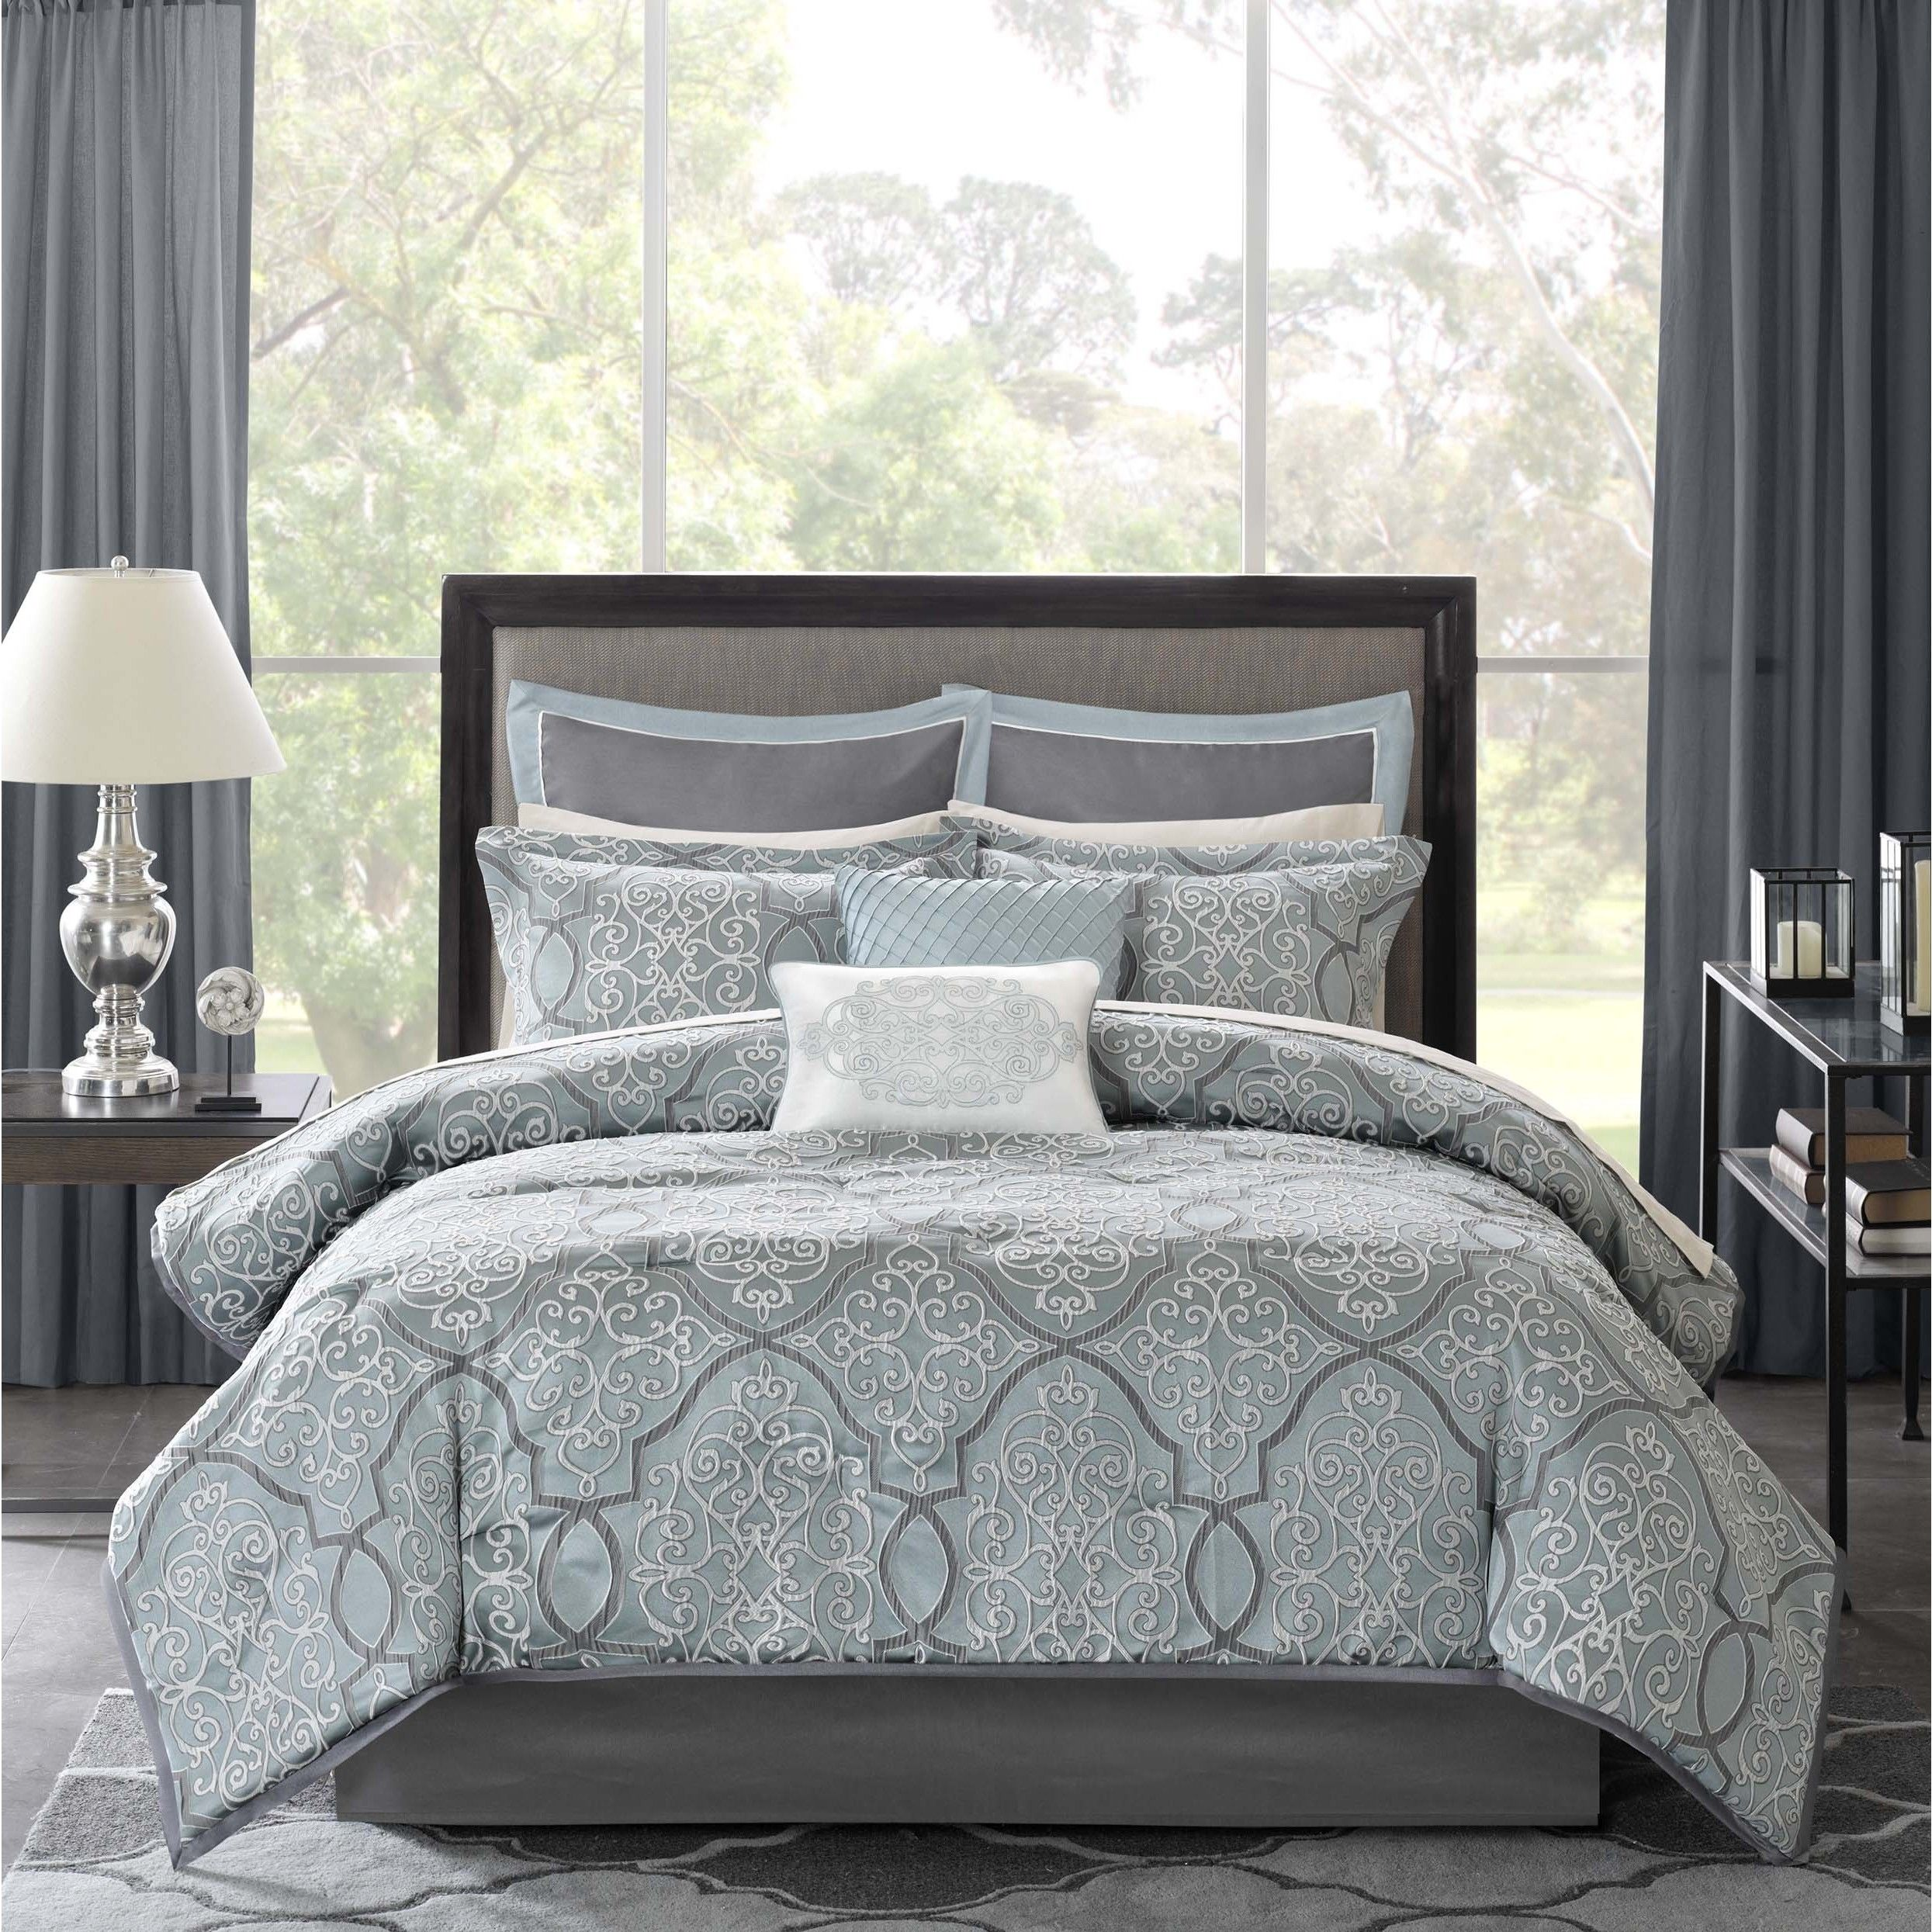 comforter beds mirrored headboard collection king michaila dimensions size full twin overstock bed only tracy quilt sets porter frame bedroom nightstand for footboard and